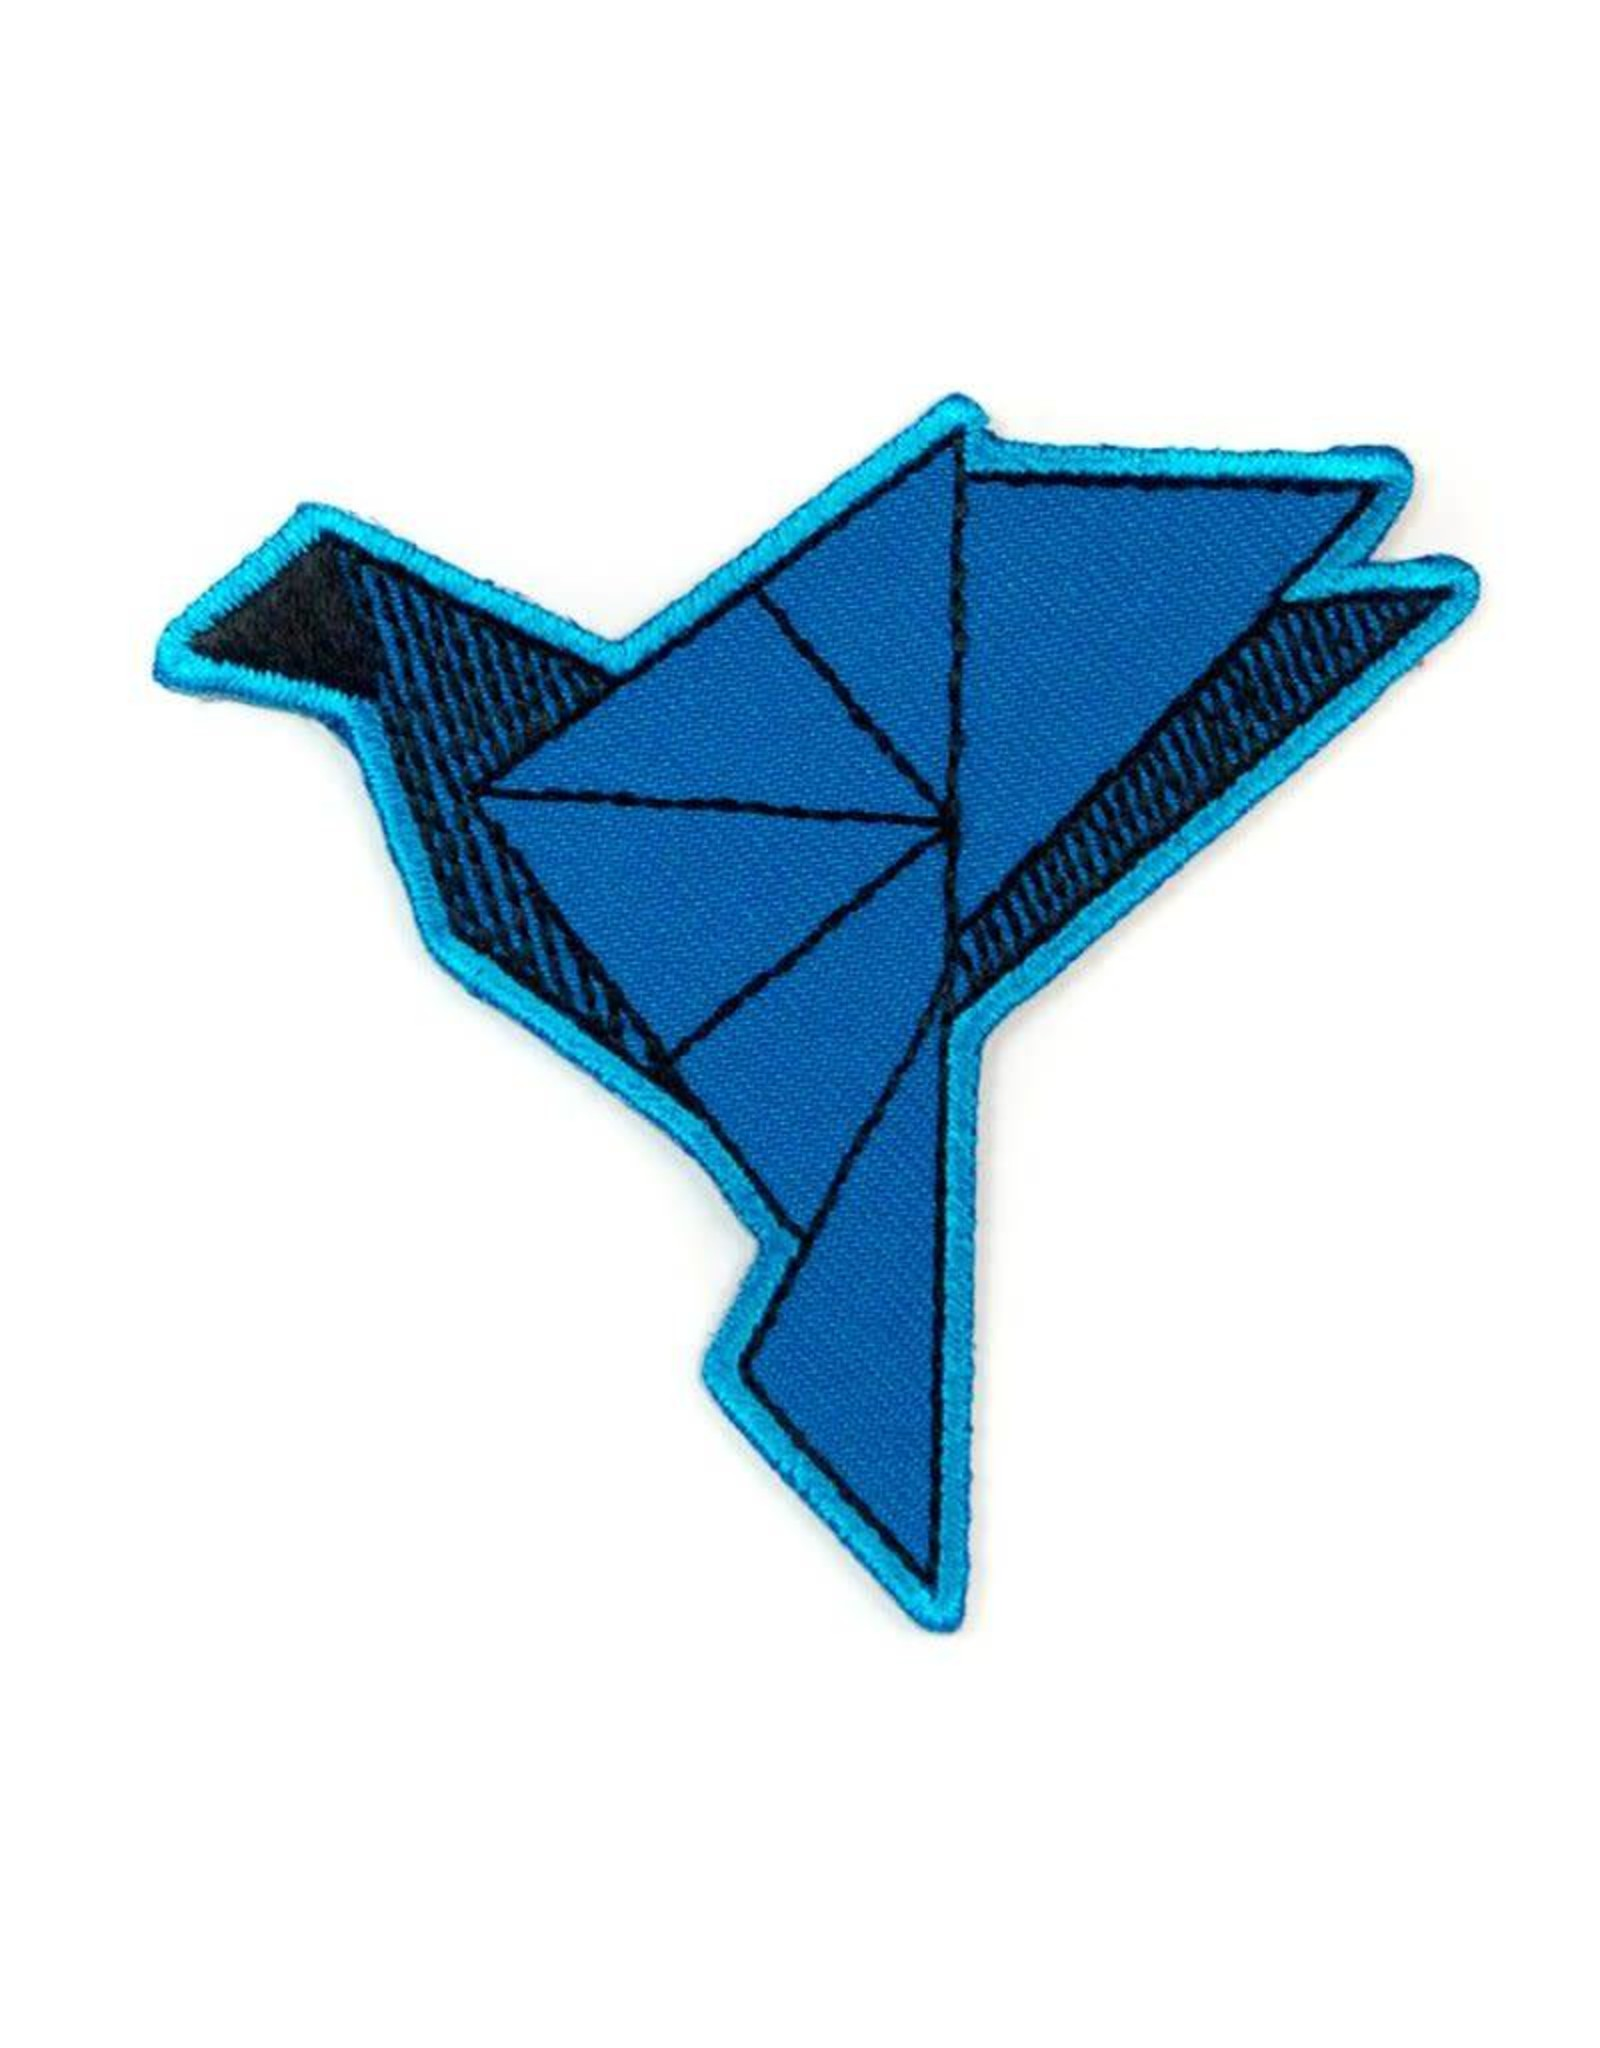 Tattoo It Sticker patch - Blue bird